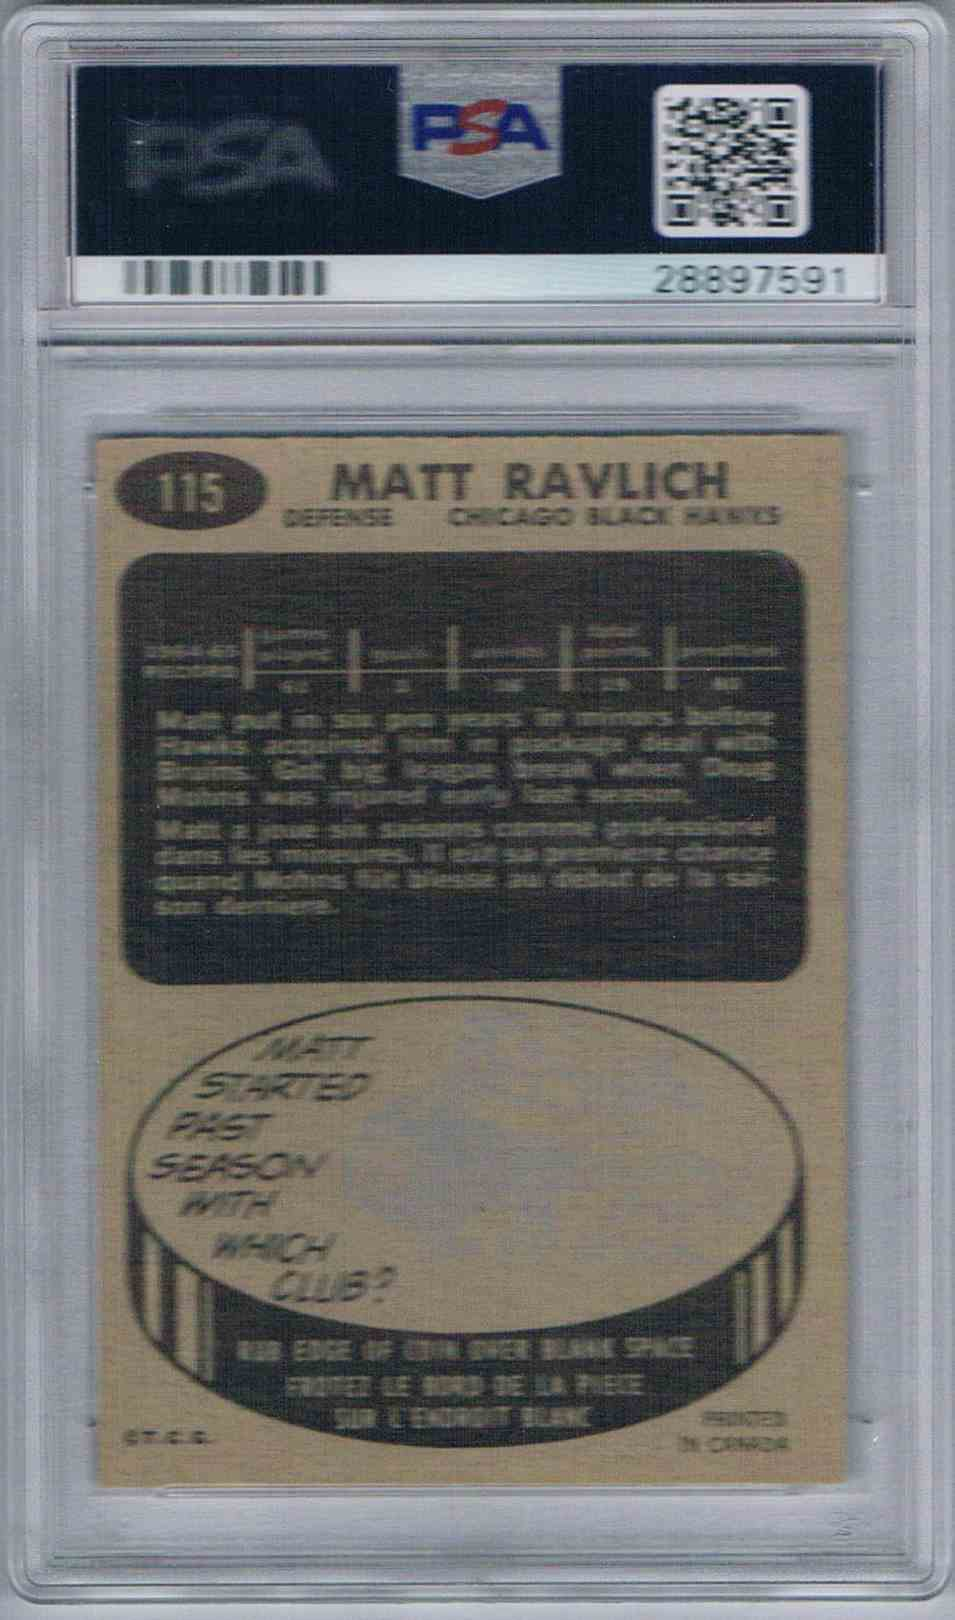 1965-66 Topps Matt Ravlich #115 card back image